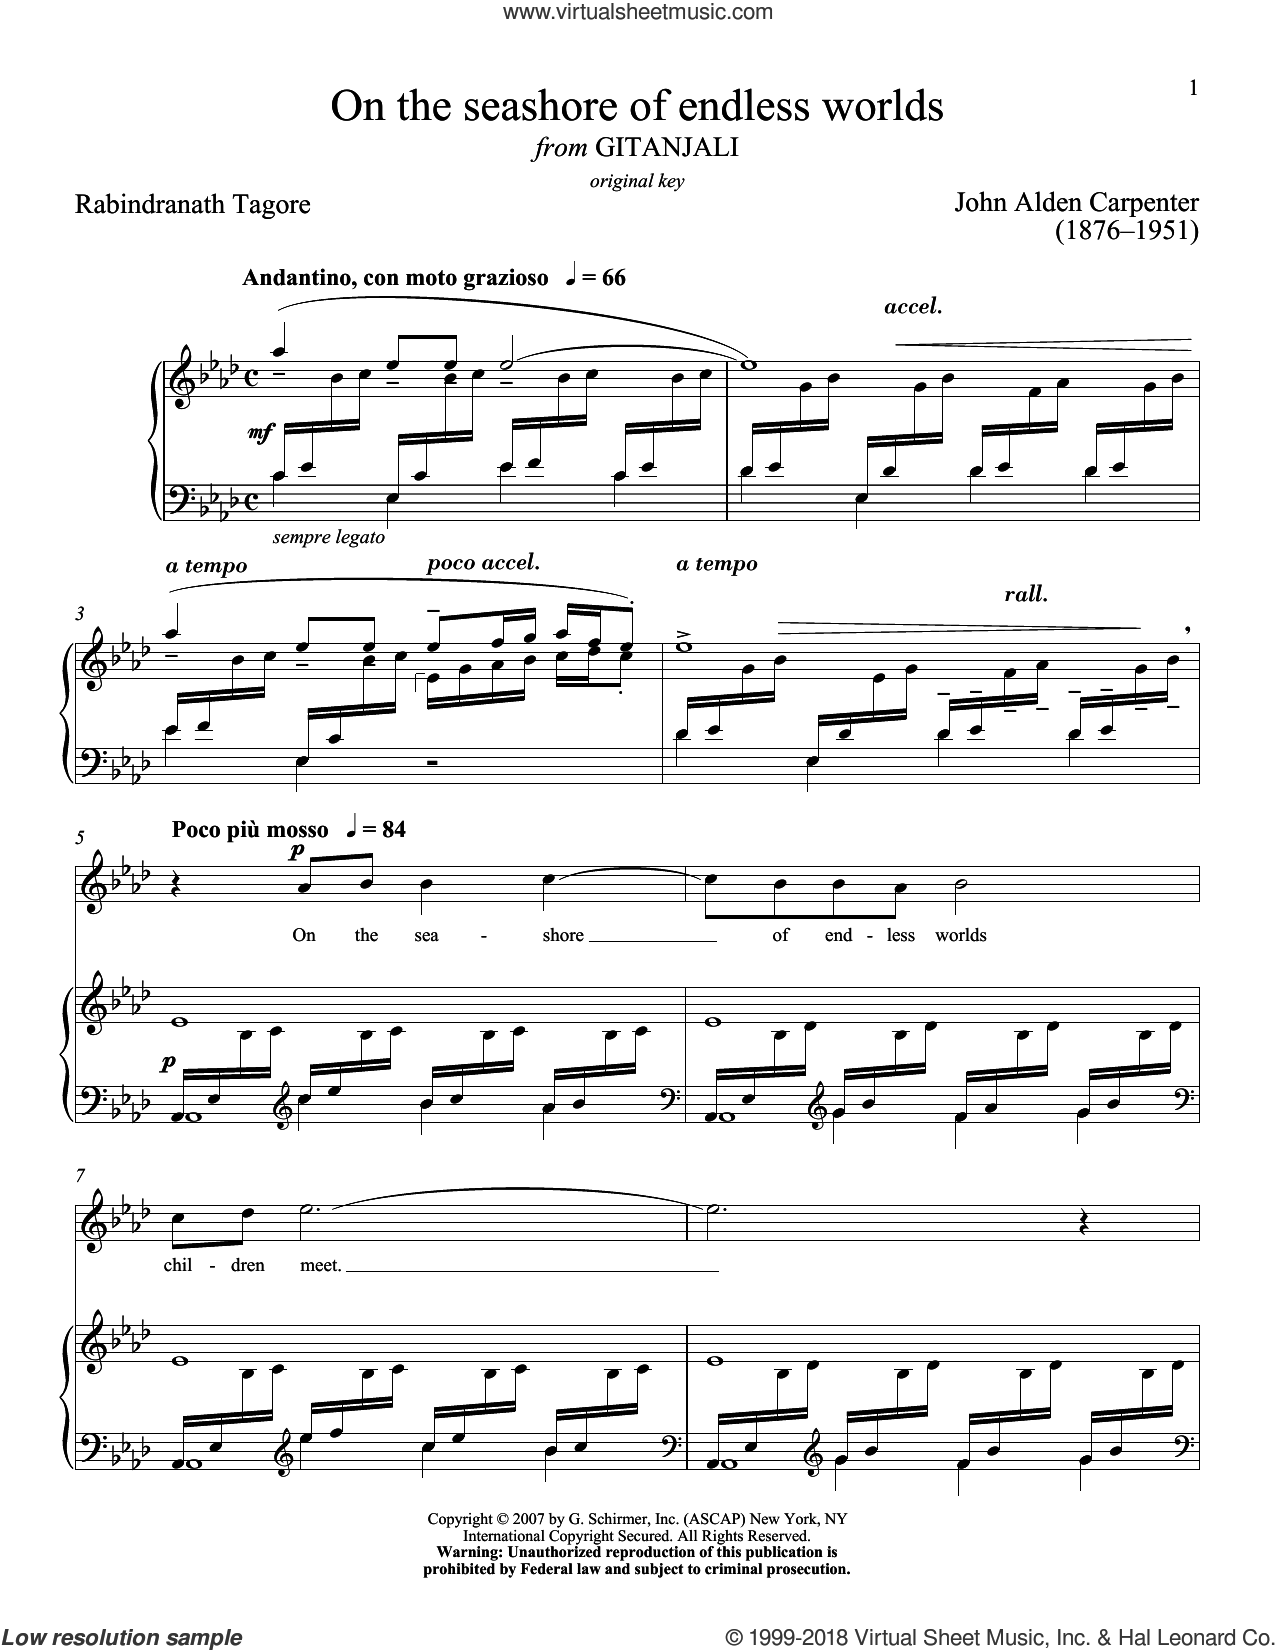 On The Seashore Of Endless Worlds sheet music for voice and piano (High Voice) by Rabindranath Tagore, Richard Walters and John Alden Carpenter, classical score, intermediate skill level